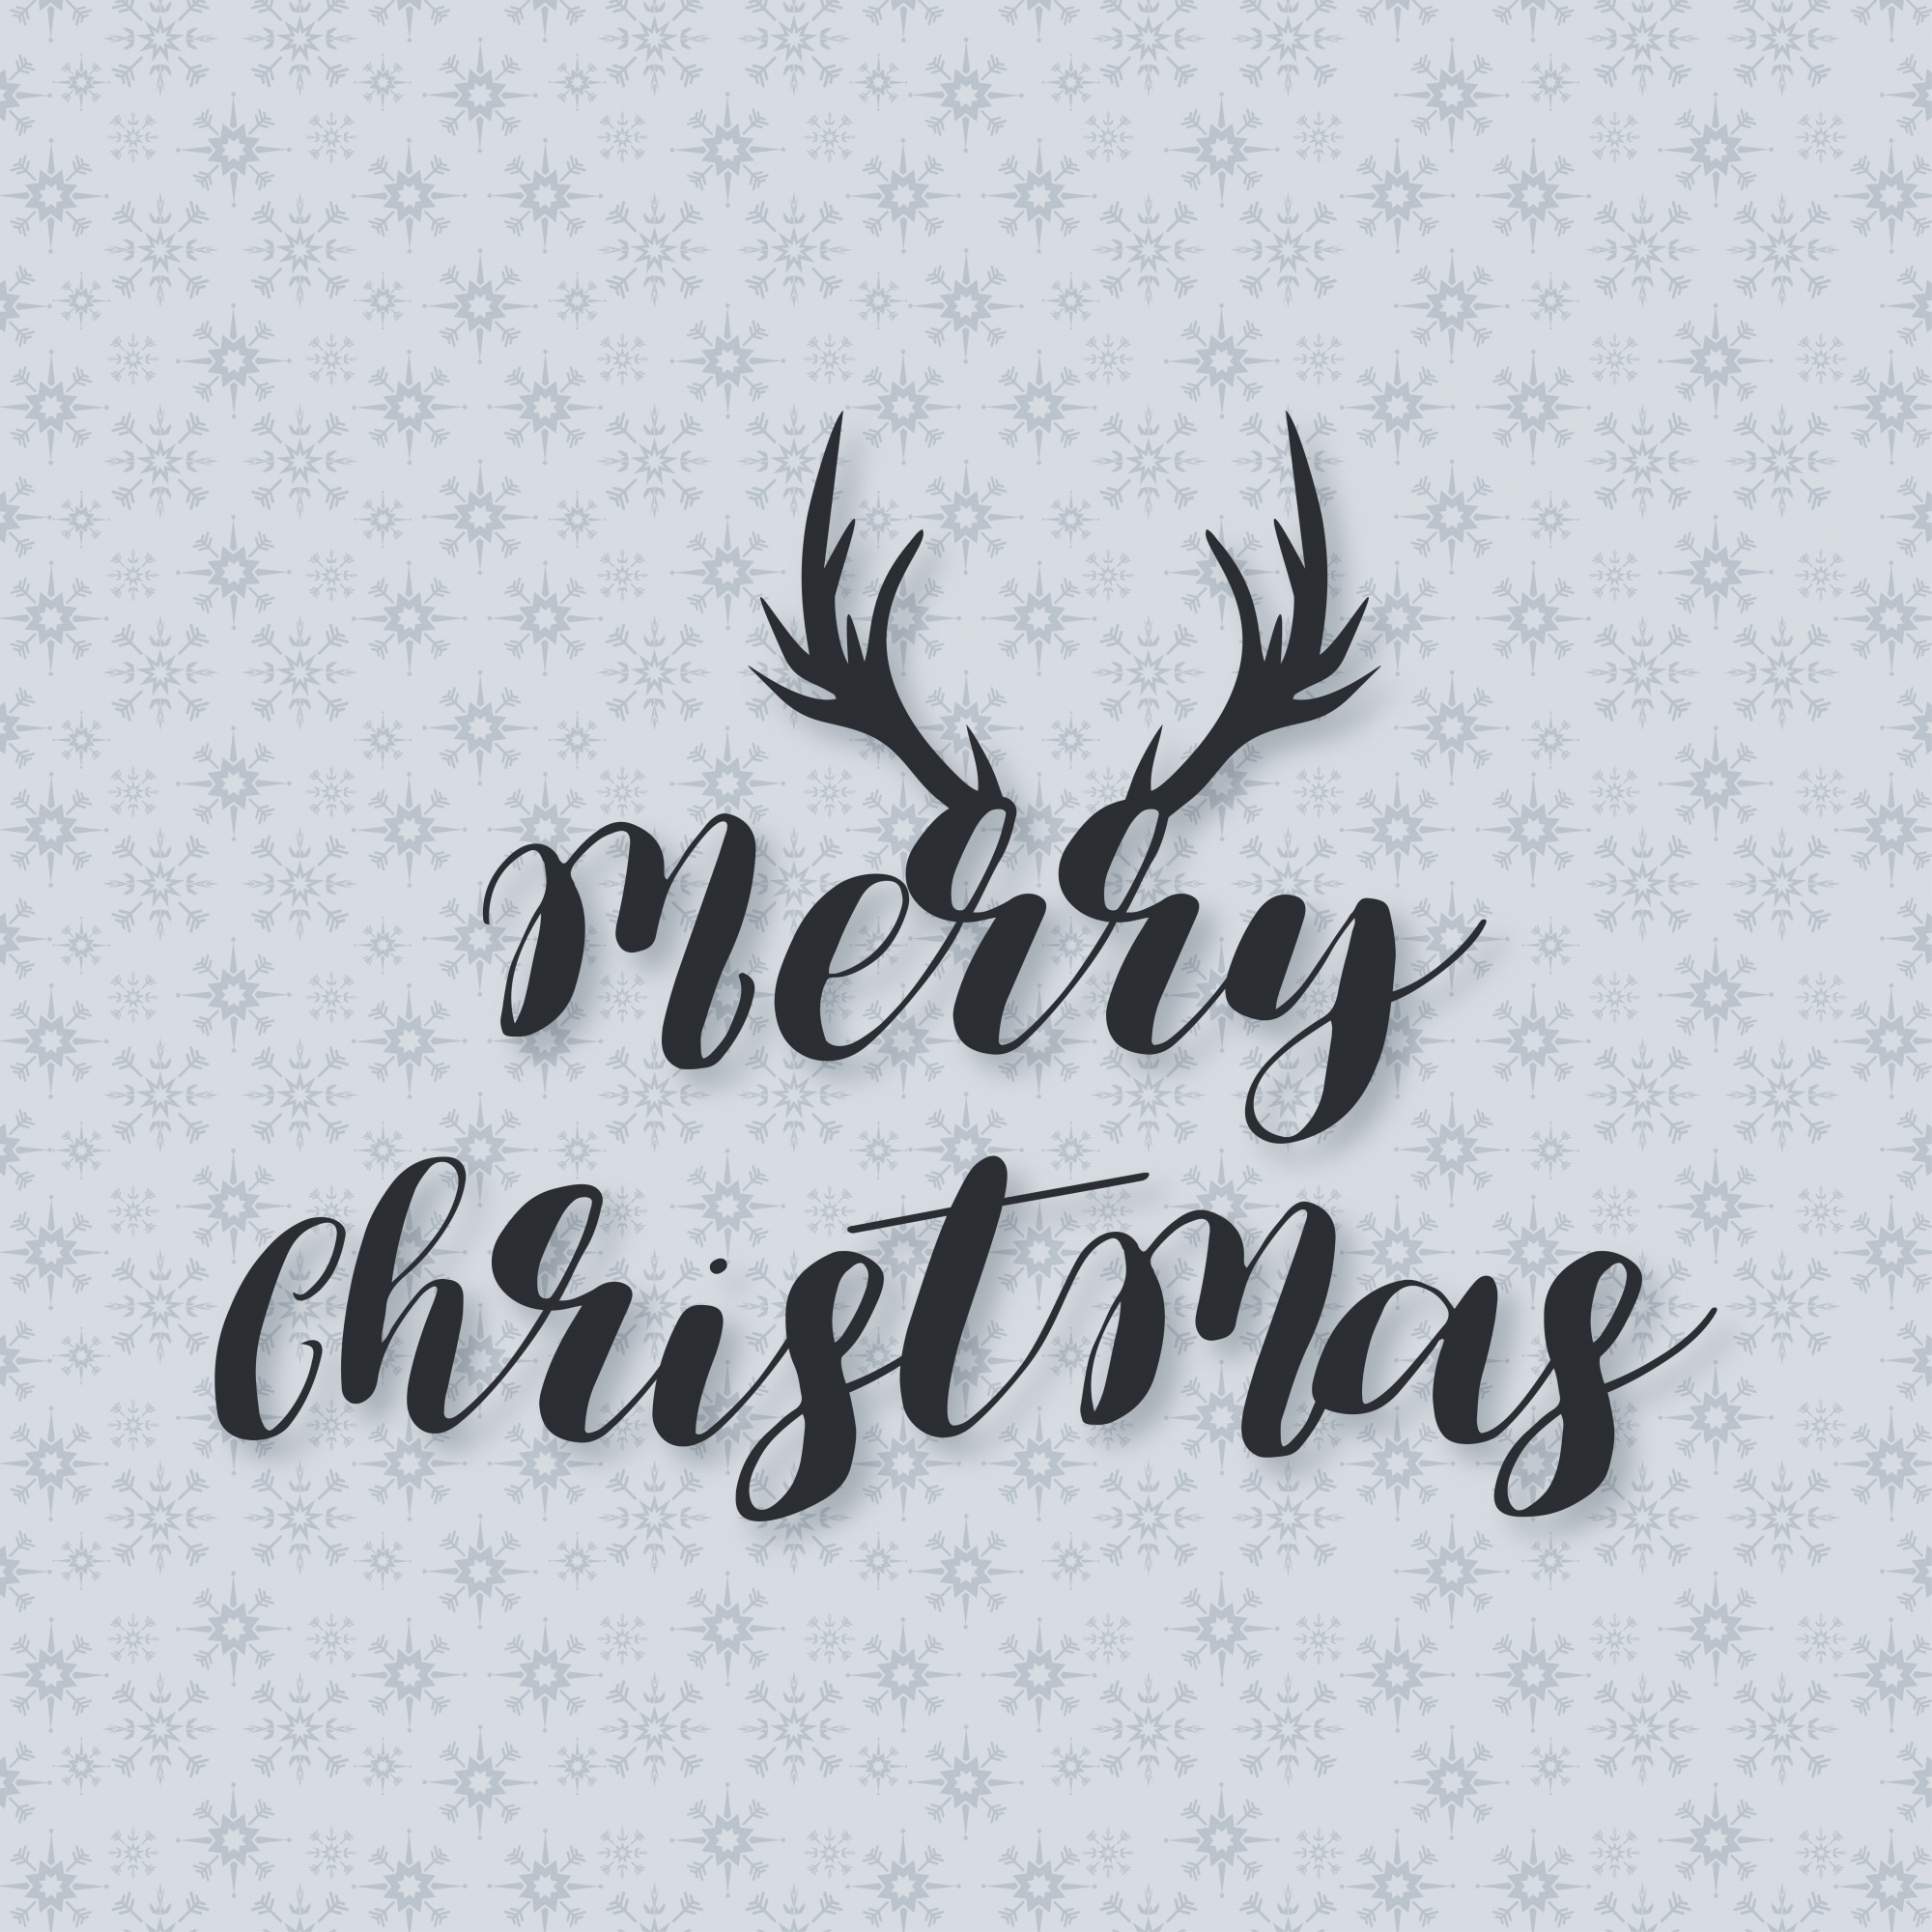 Christmas Poster including creative typography with Deer Horns on snowflake pattern background